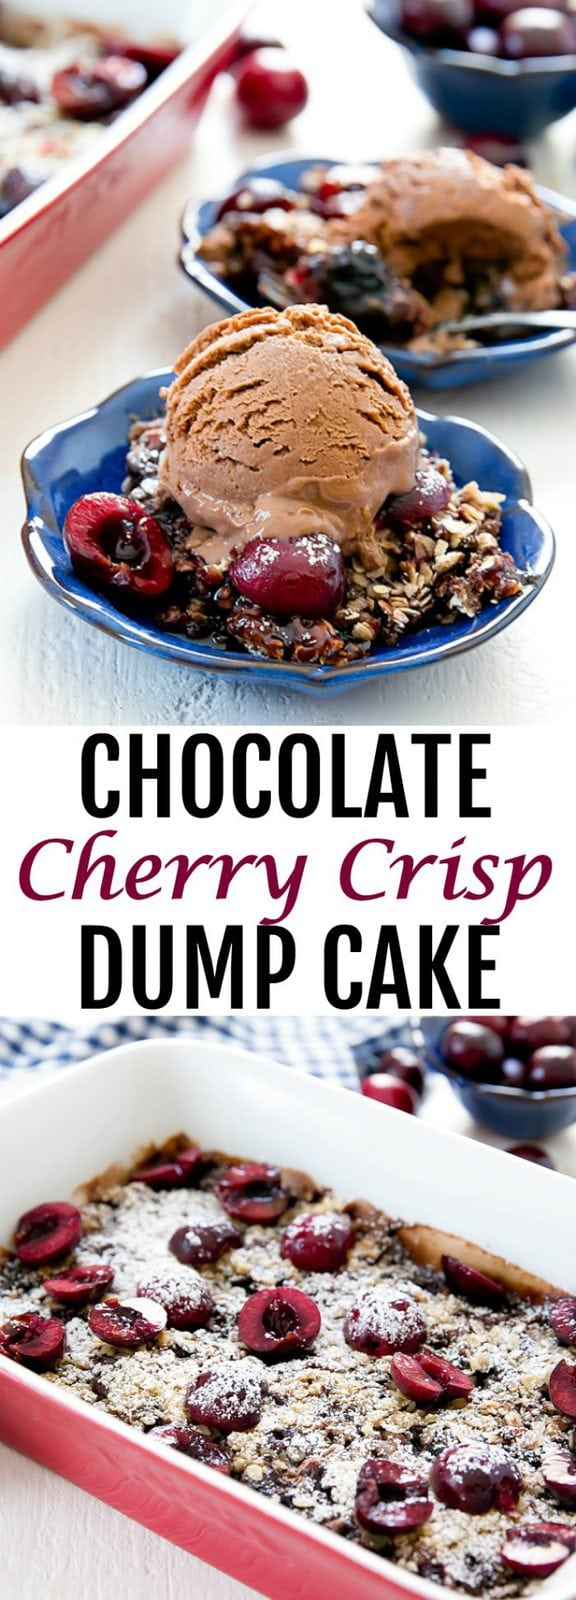 Chocolate Cherry Crisp Dump Cake